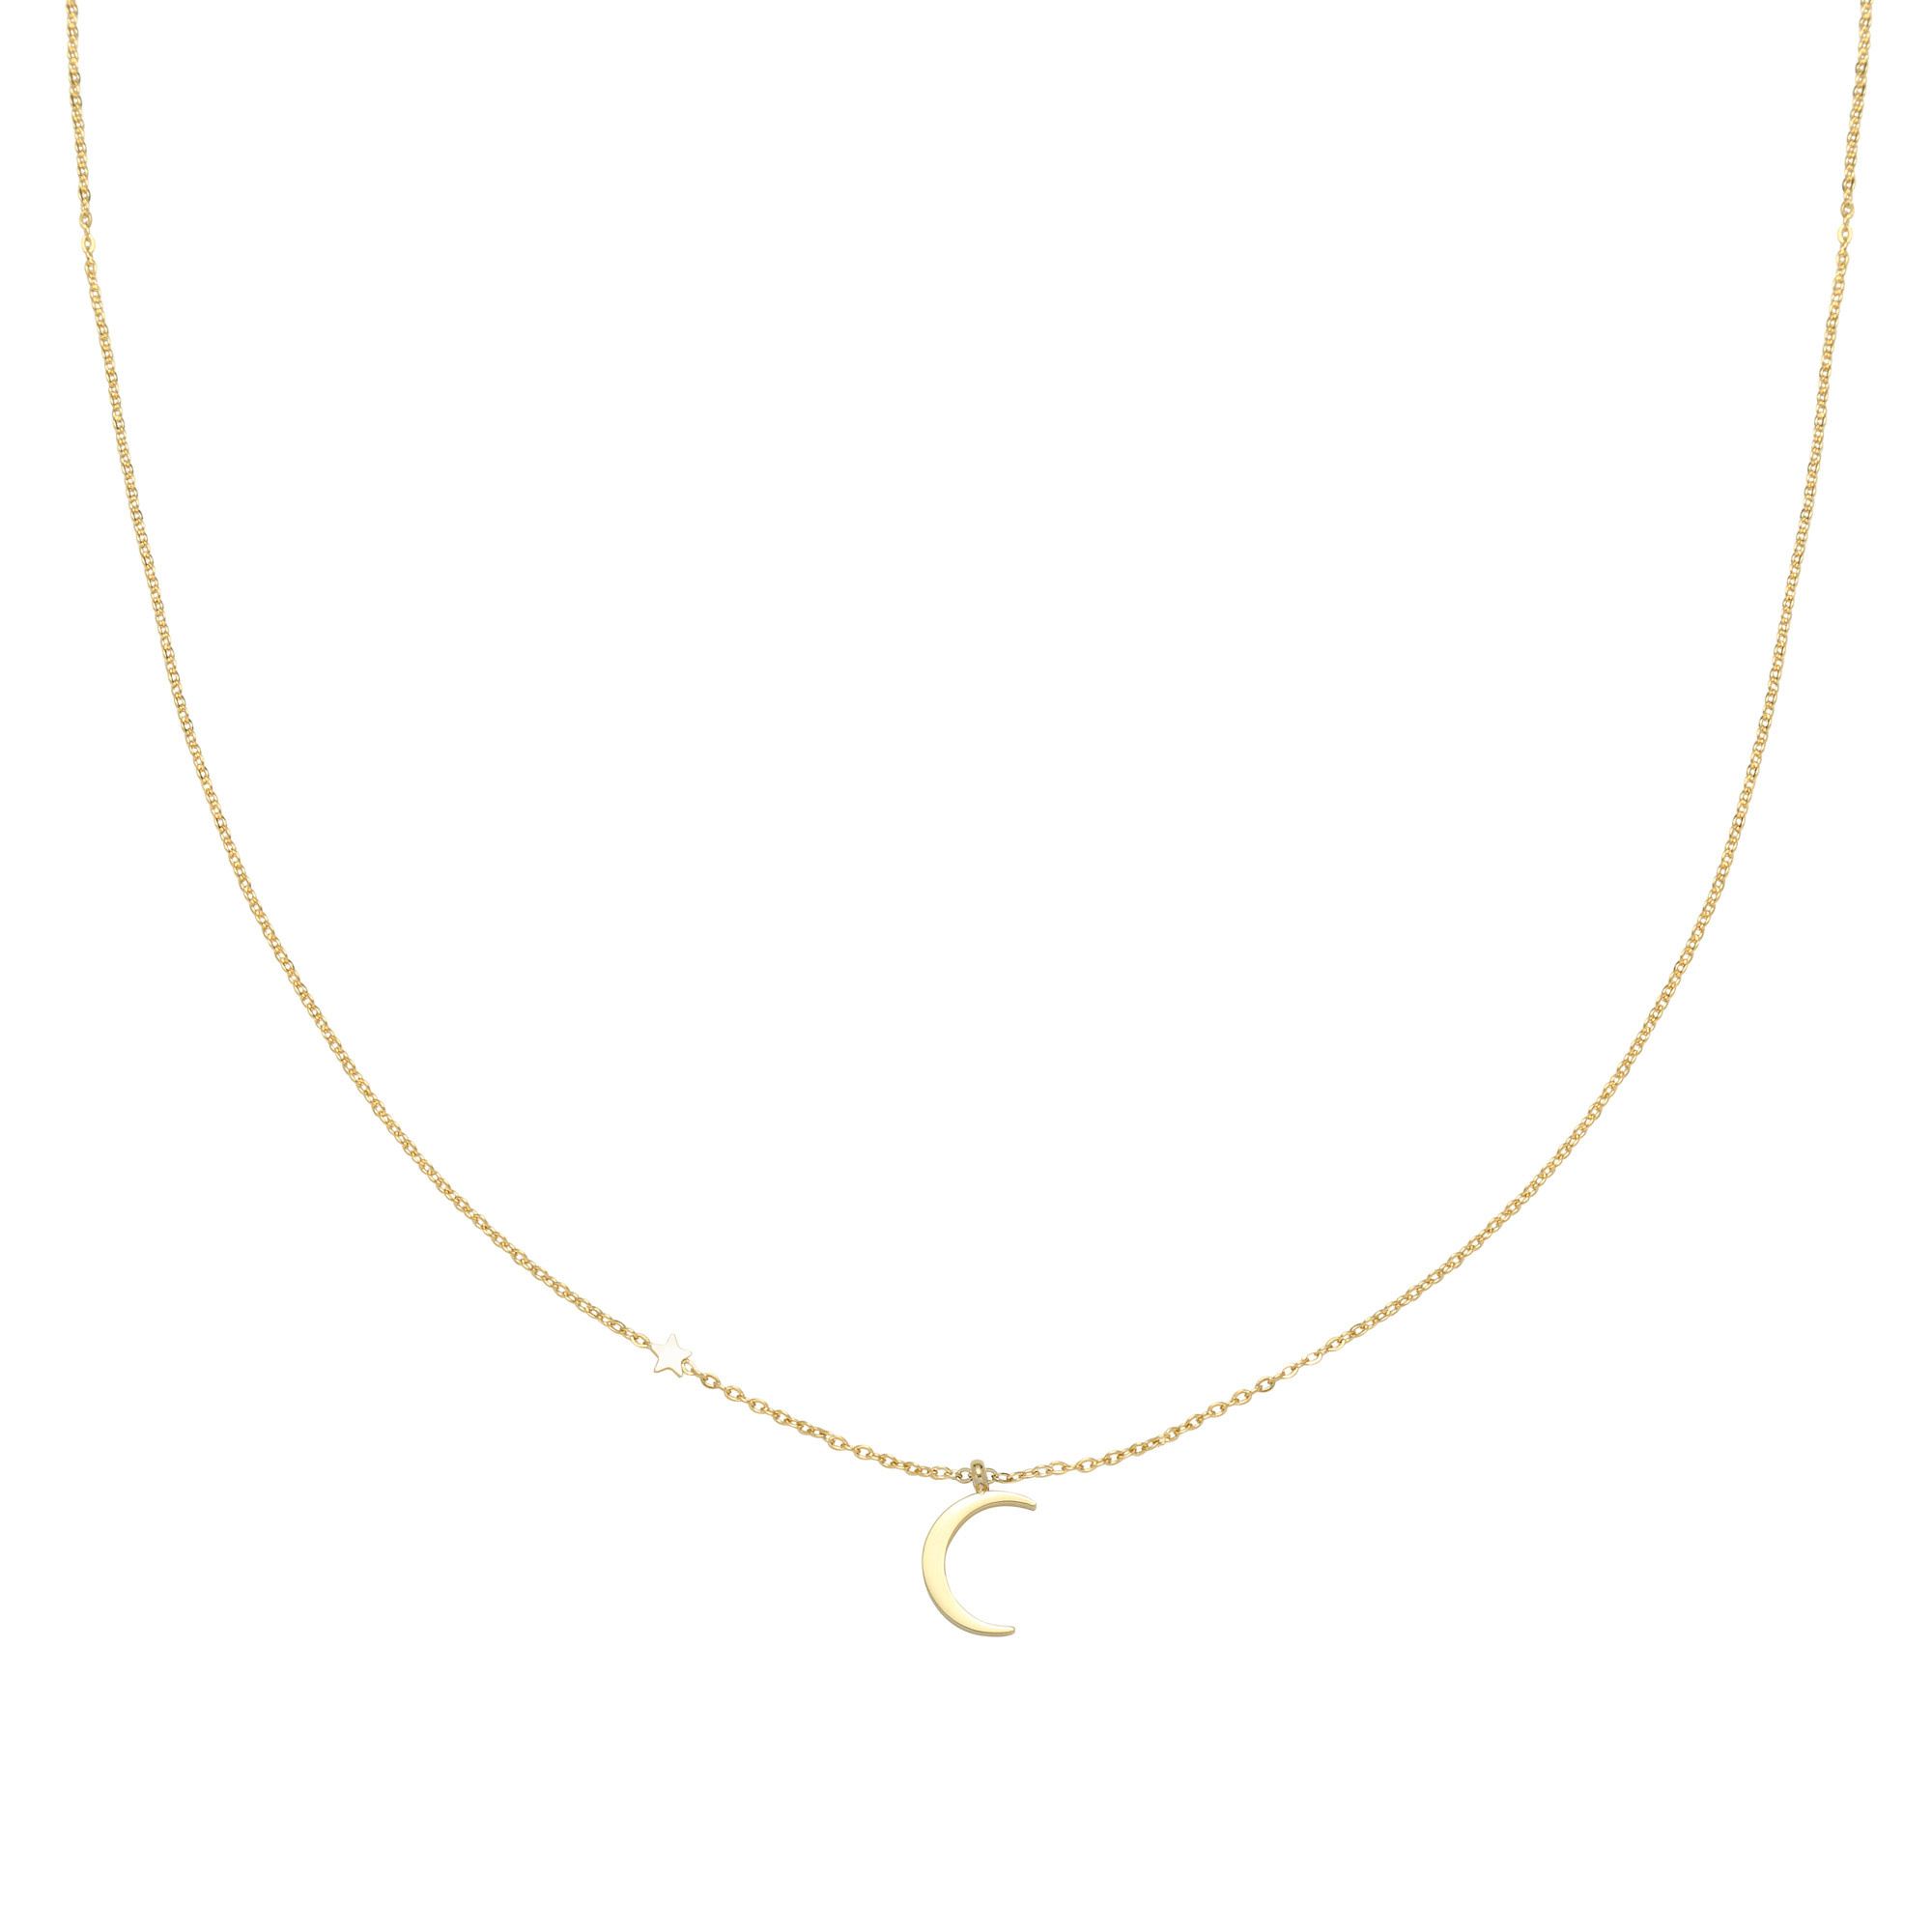 With love Necklace moonlight gold